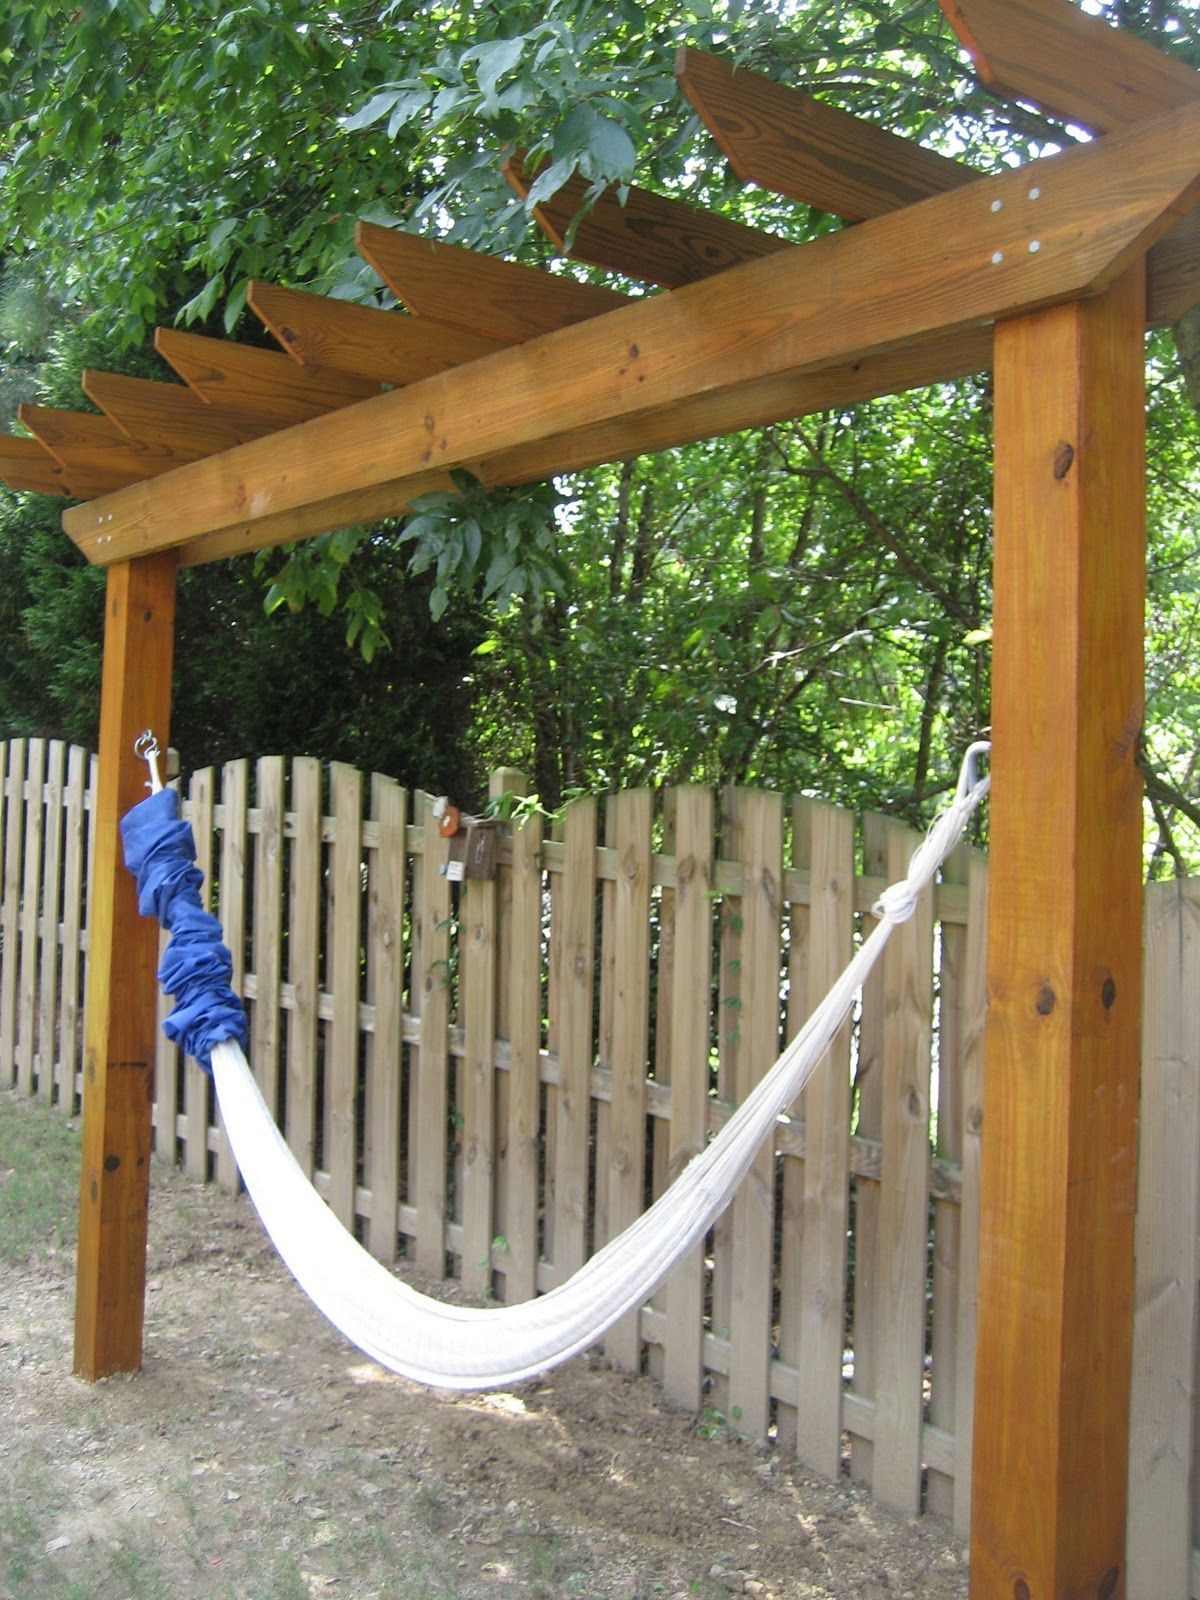 Diy hammock stand i like the fence too outdoors pinterest